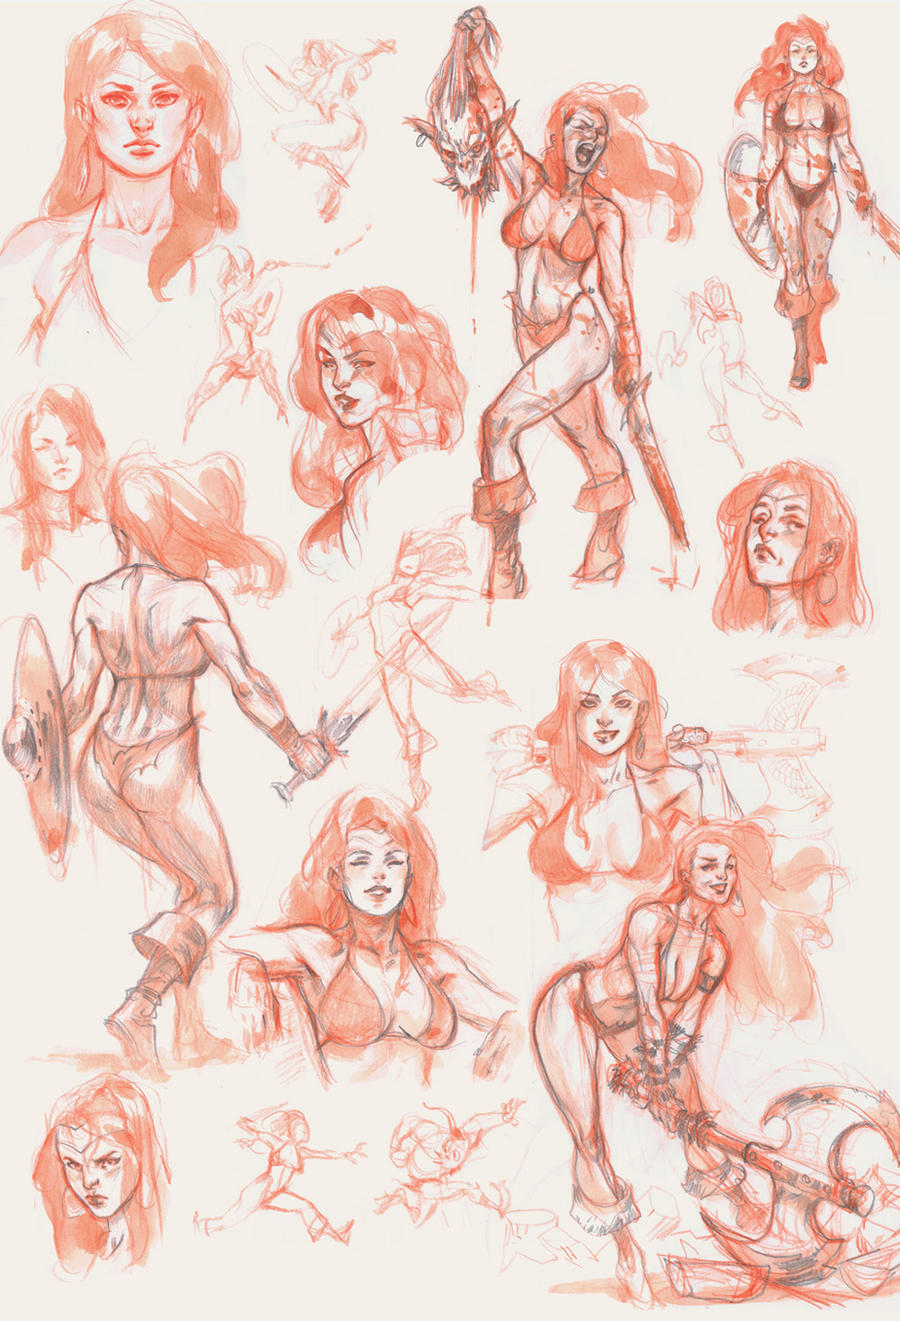 Red Sketches by Scebiqu